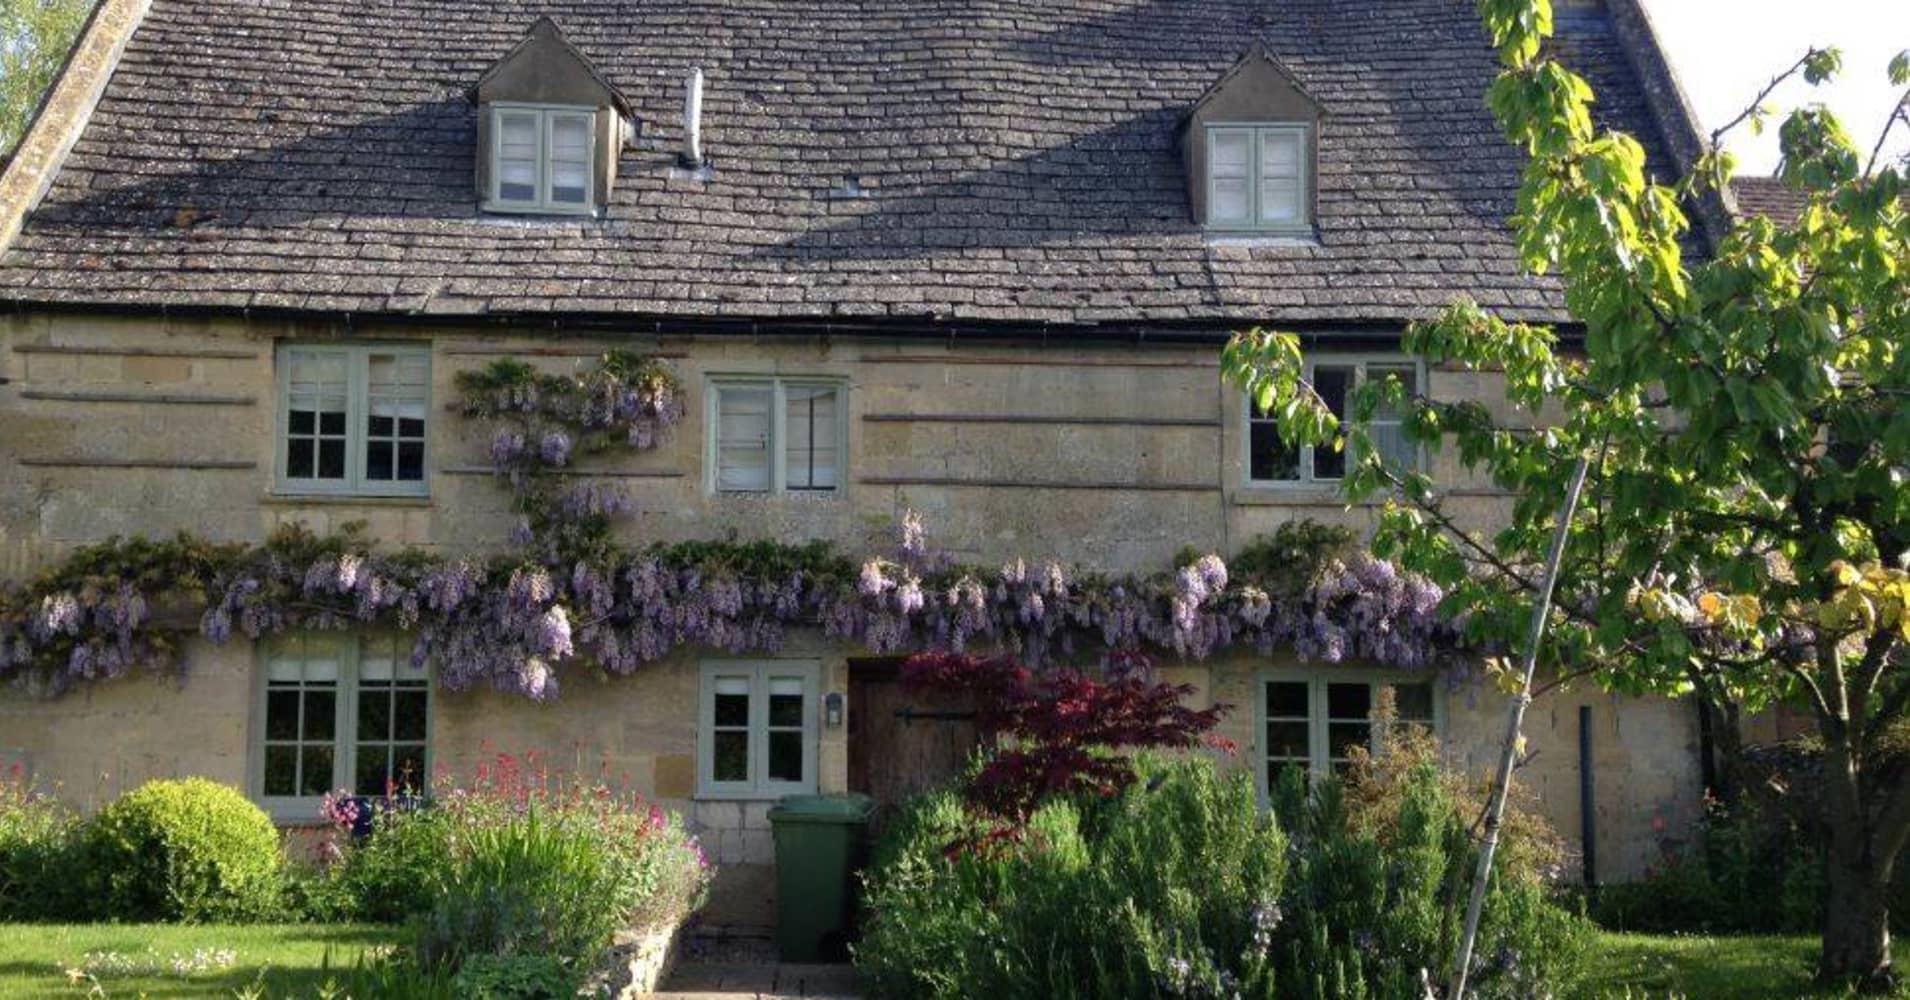 A property in England's bucolic Cotswolds region.